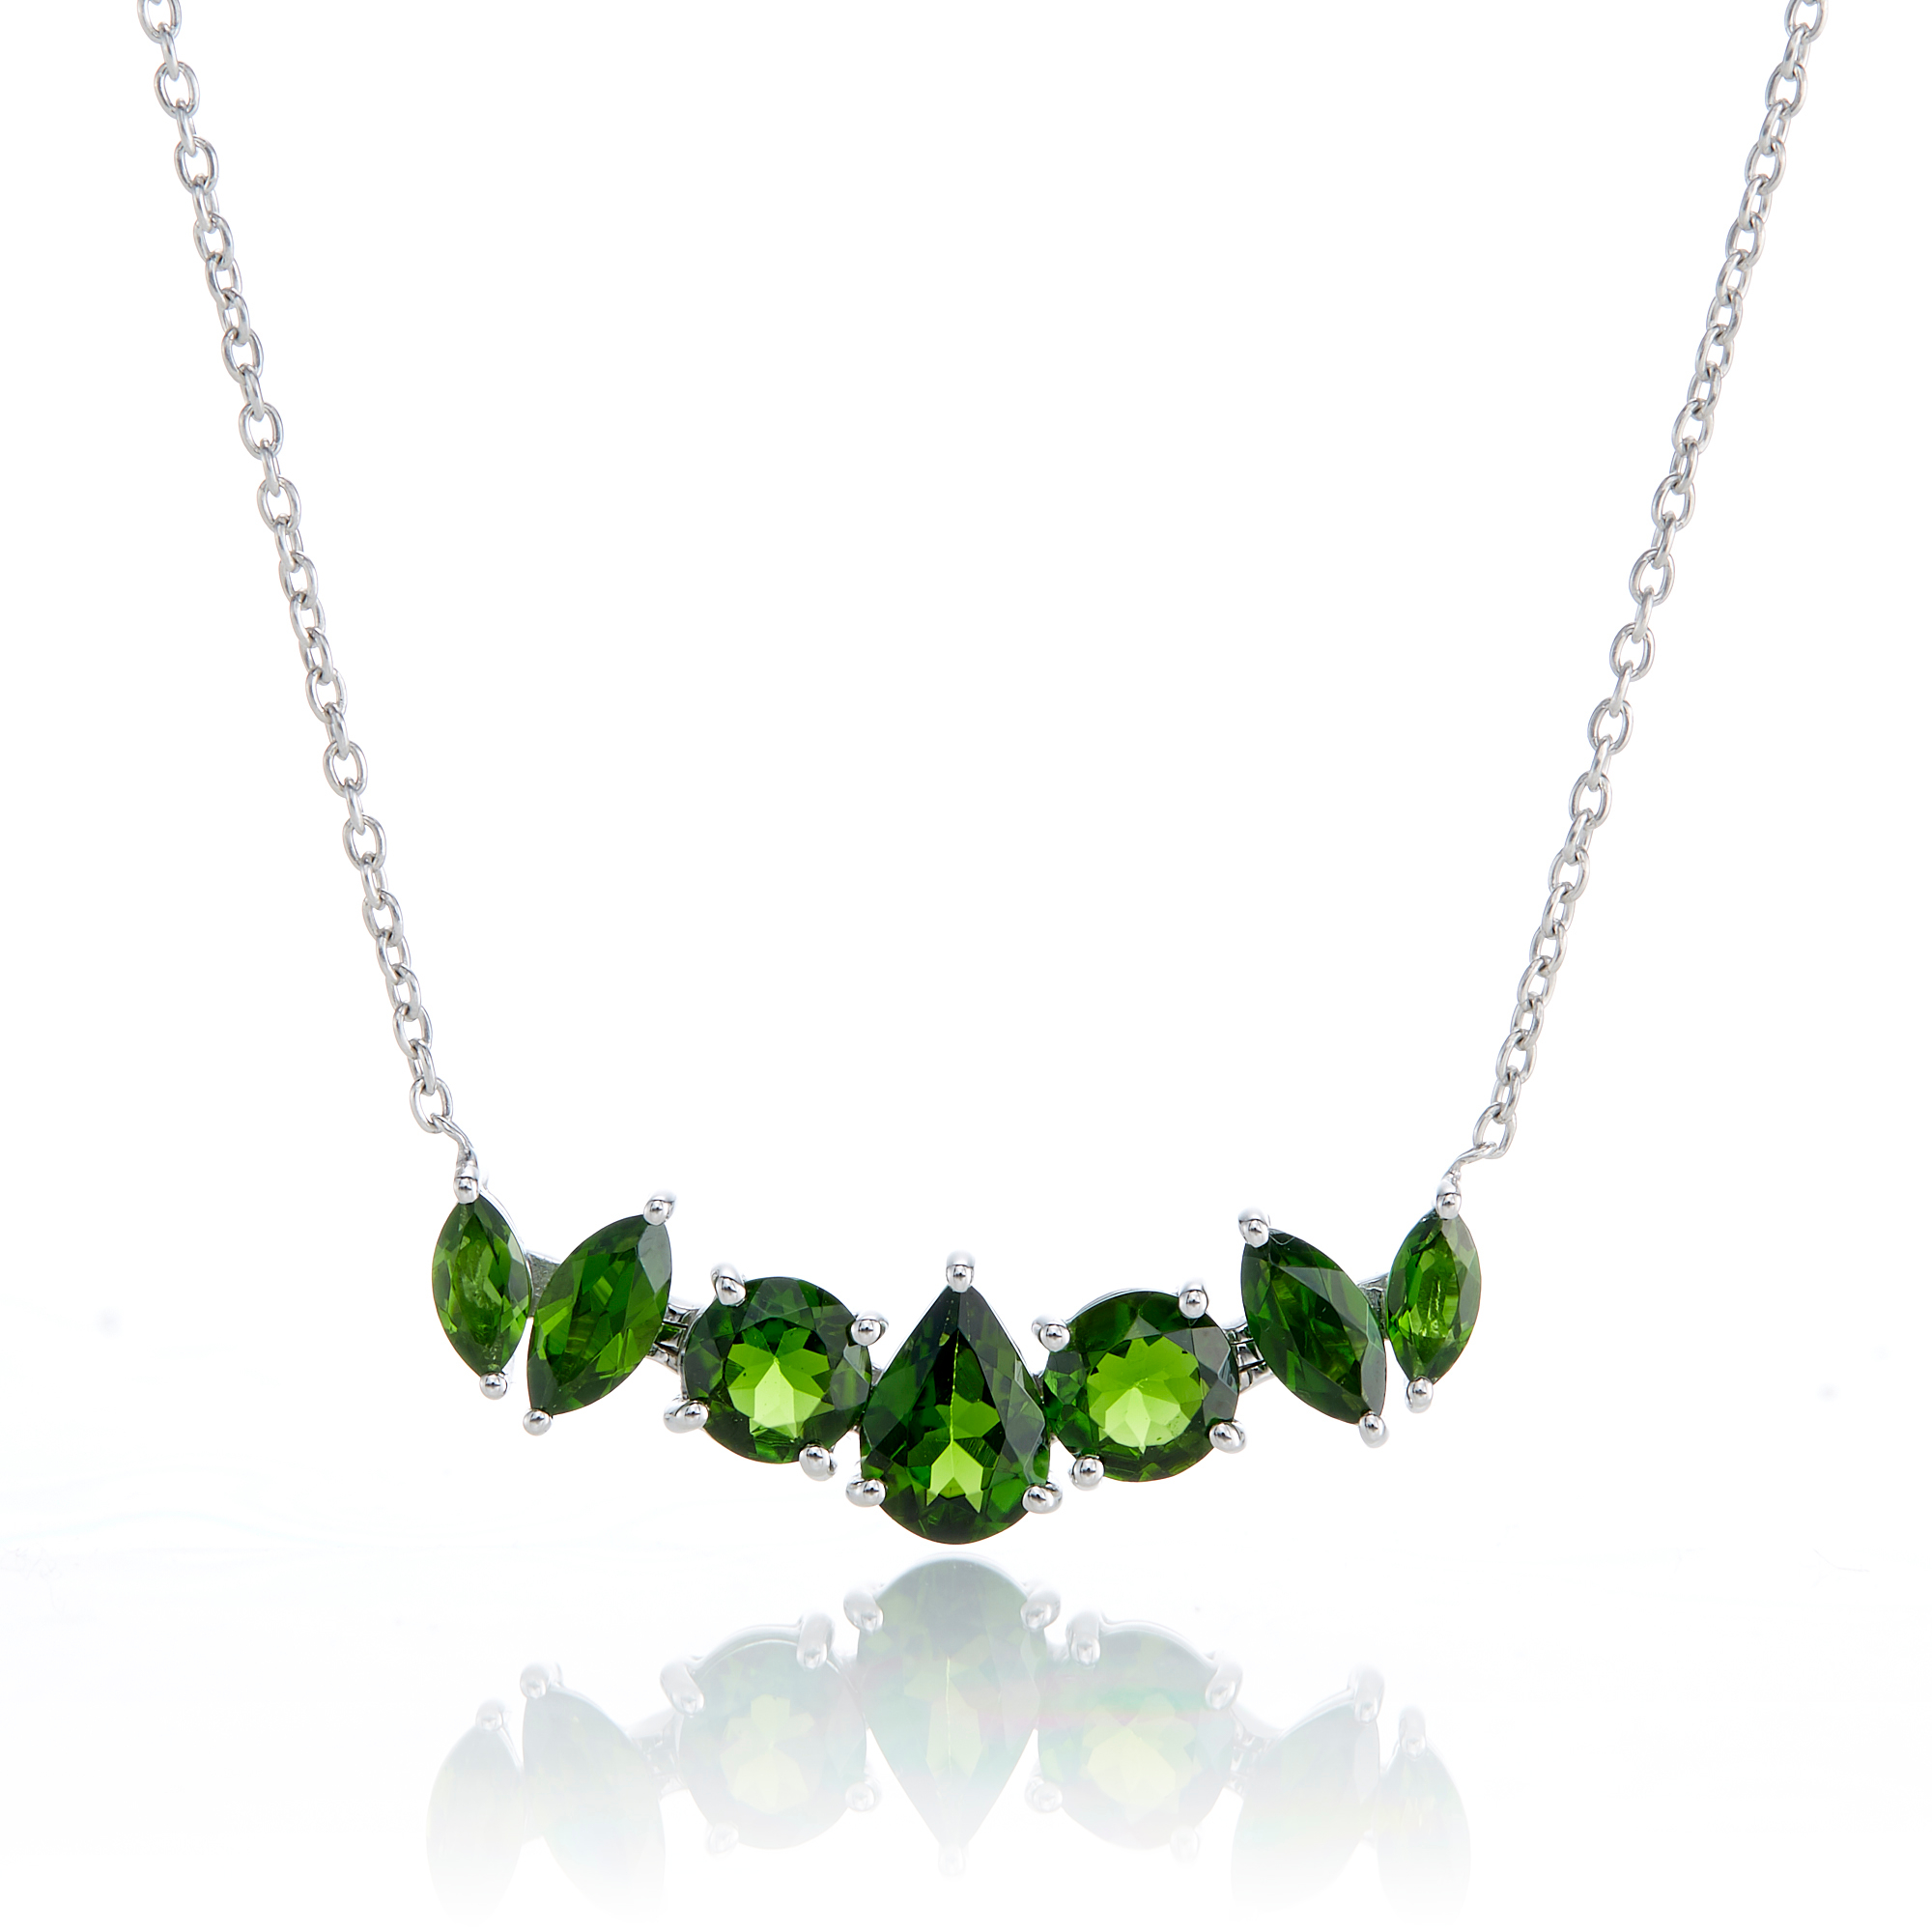 Gump's 7-Stone Chrome Diopside Pendant Necklace